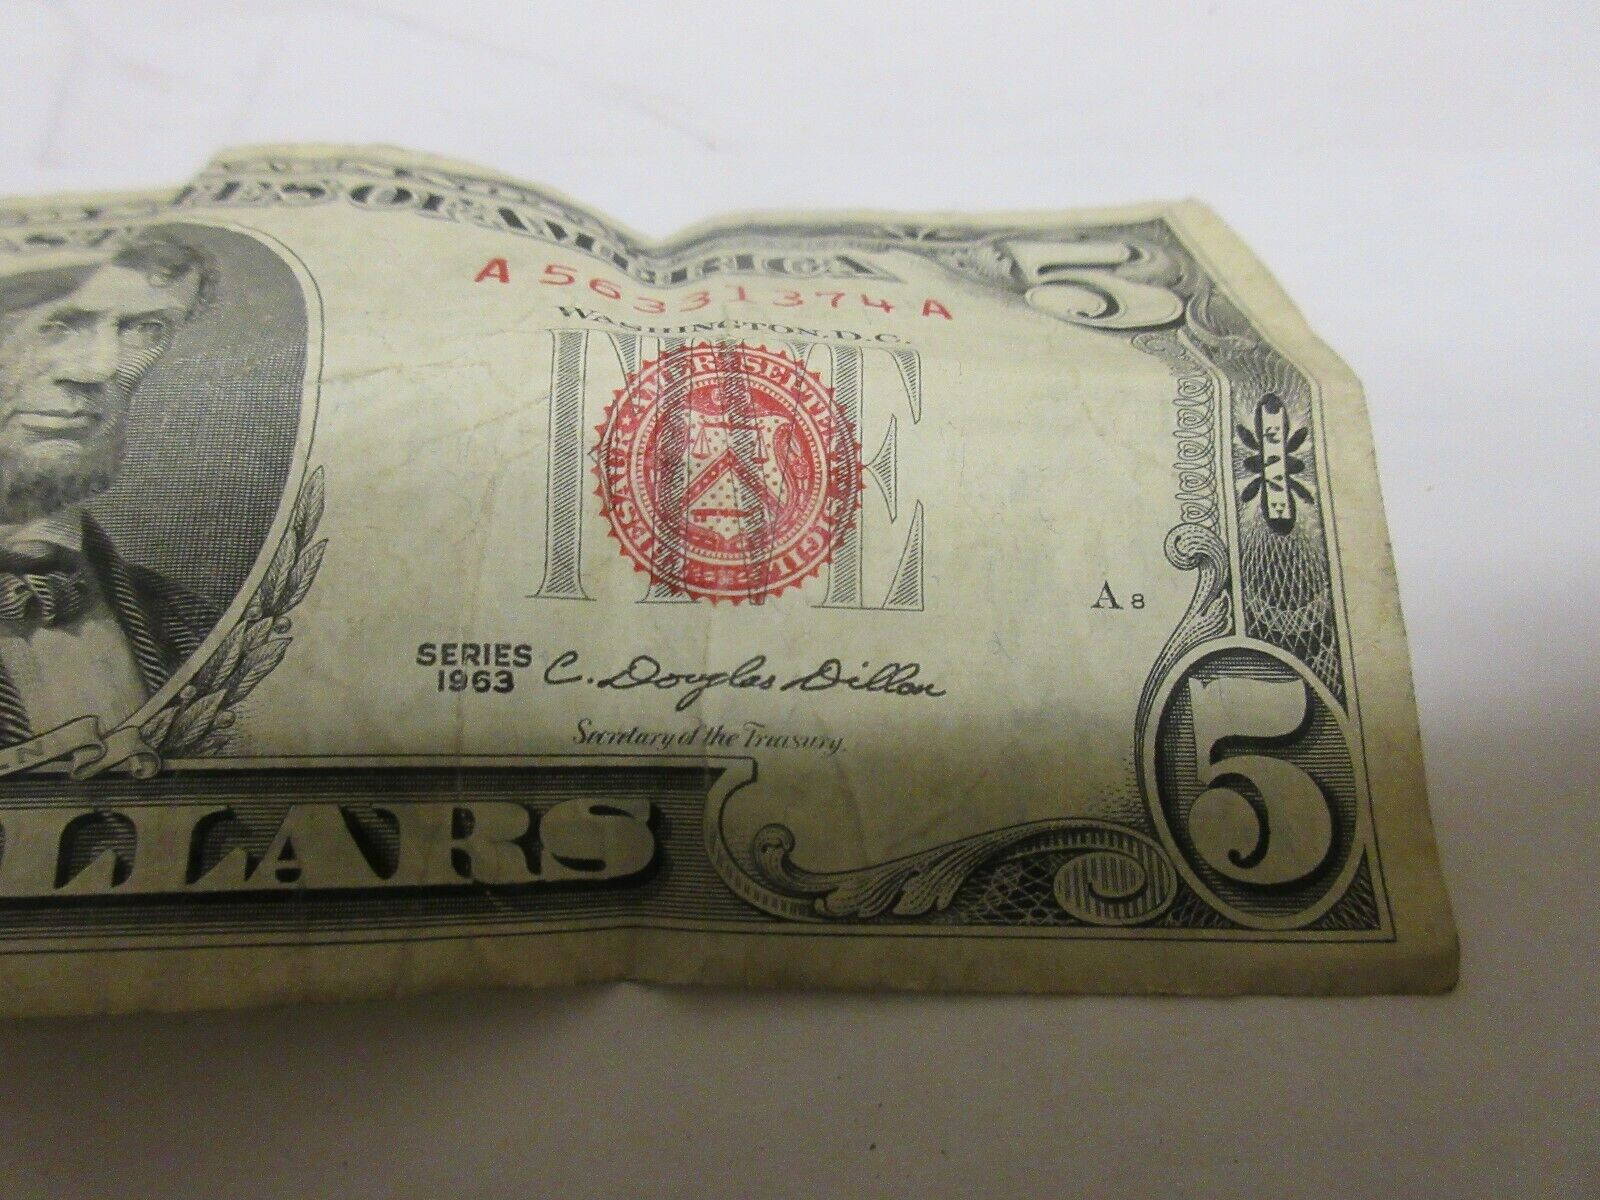 Series 1963 United States Note $5 Bill w/ Red Seal & Se